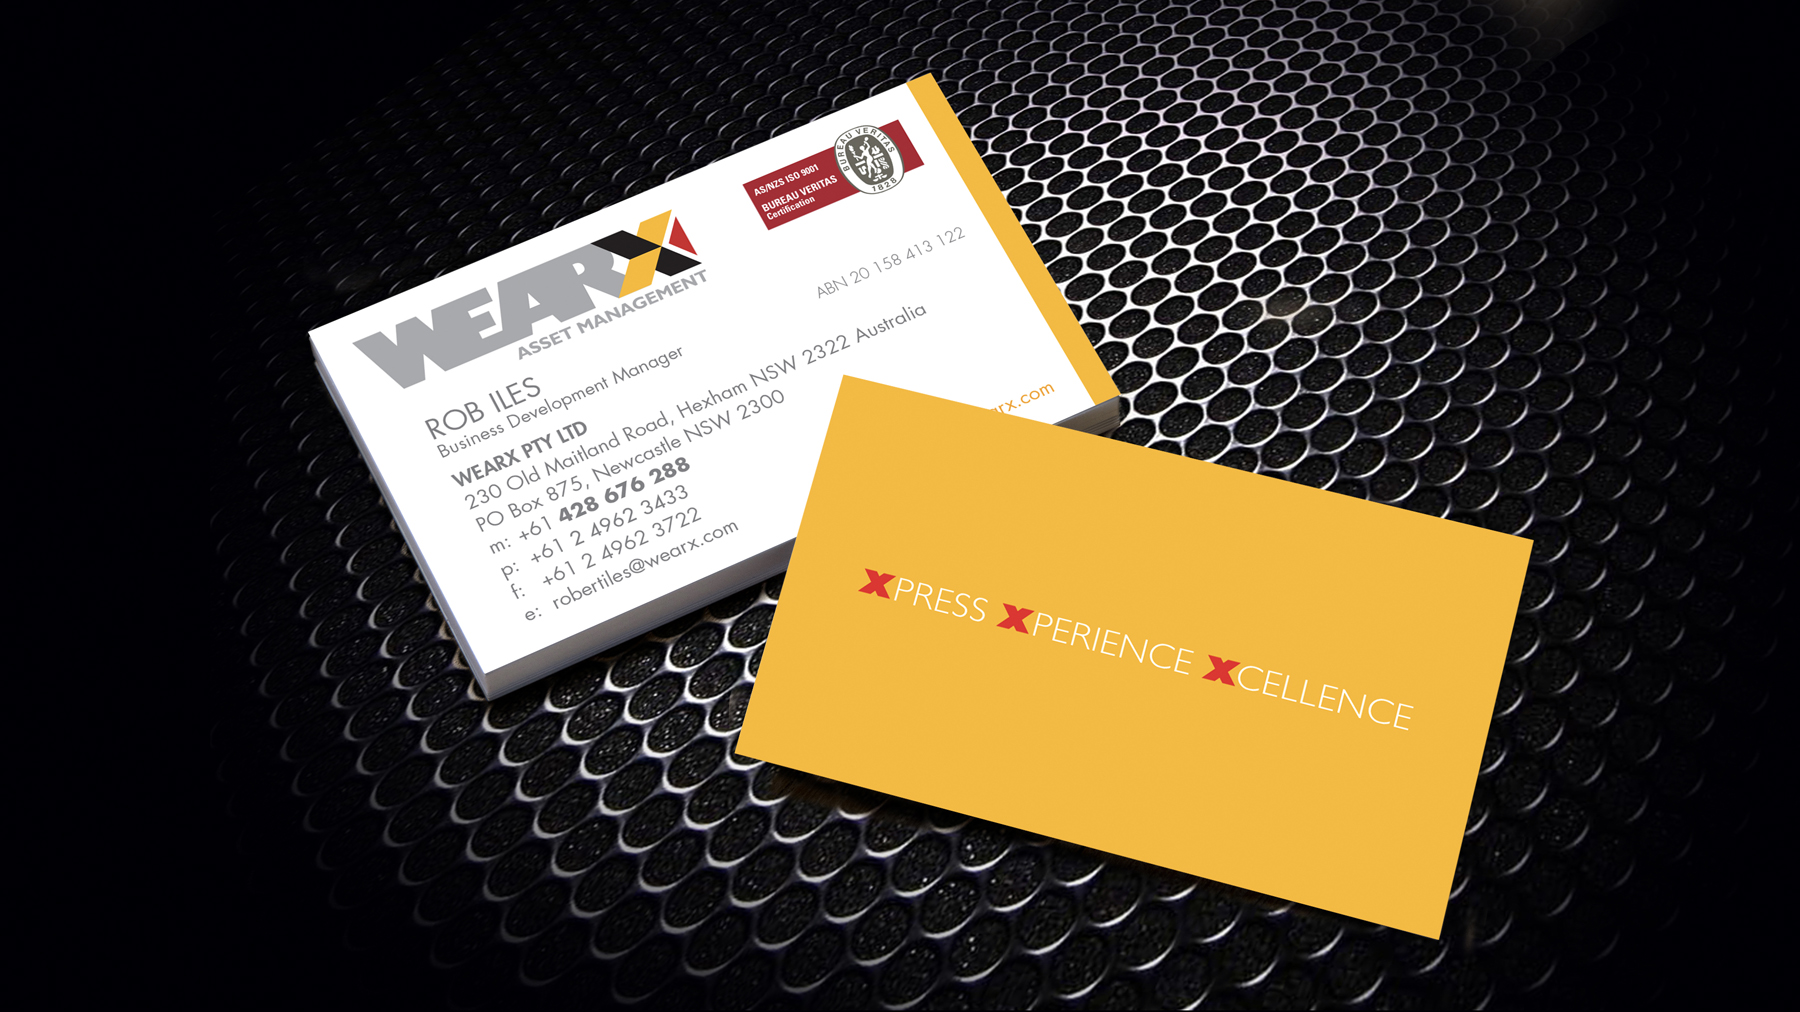 WEARX Business Card Sample on Black Background